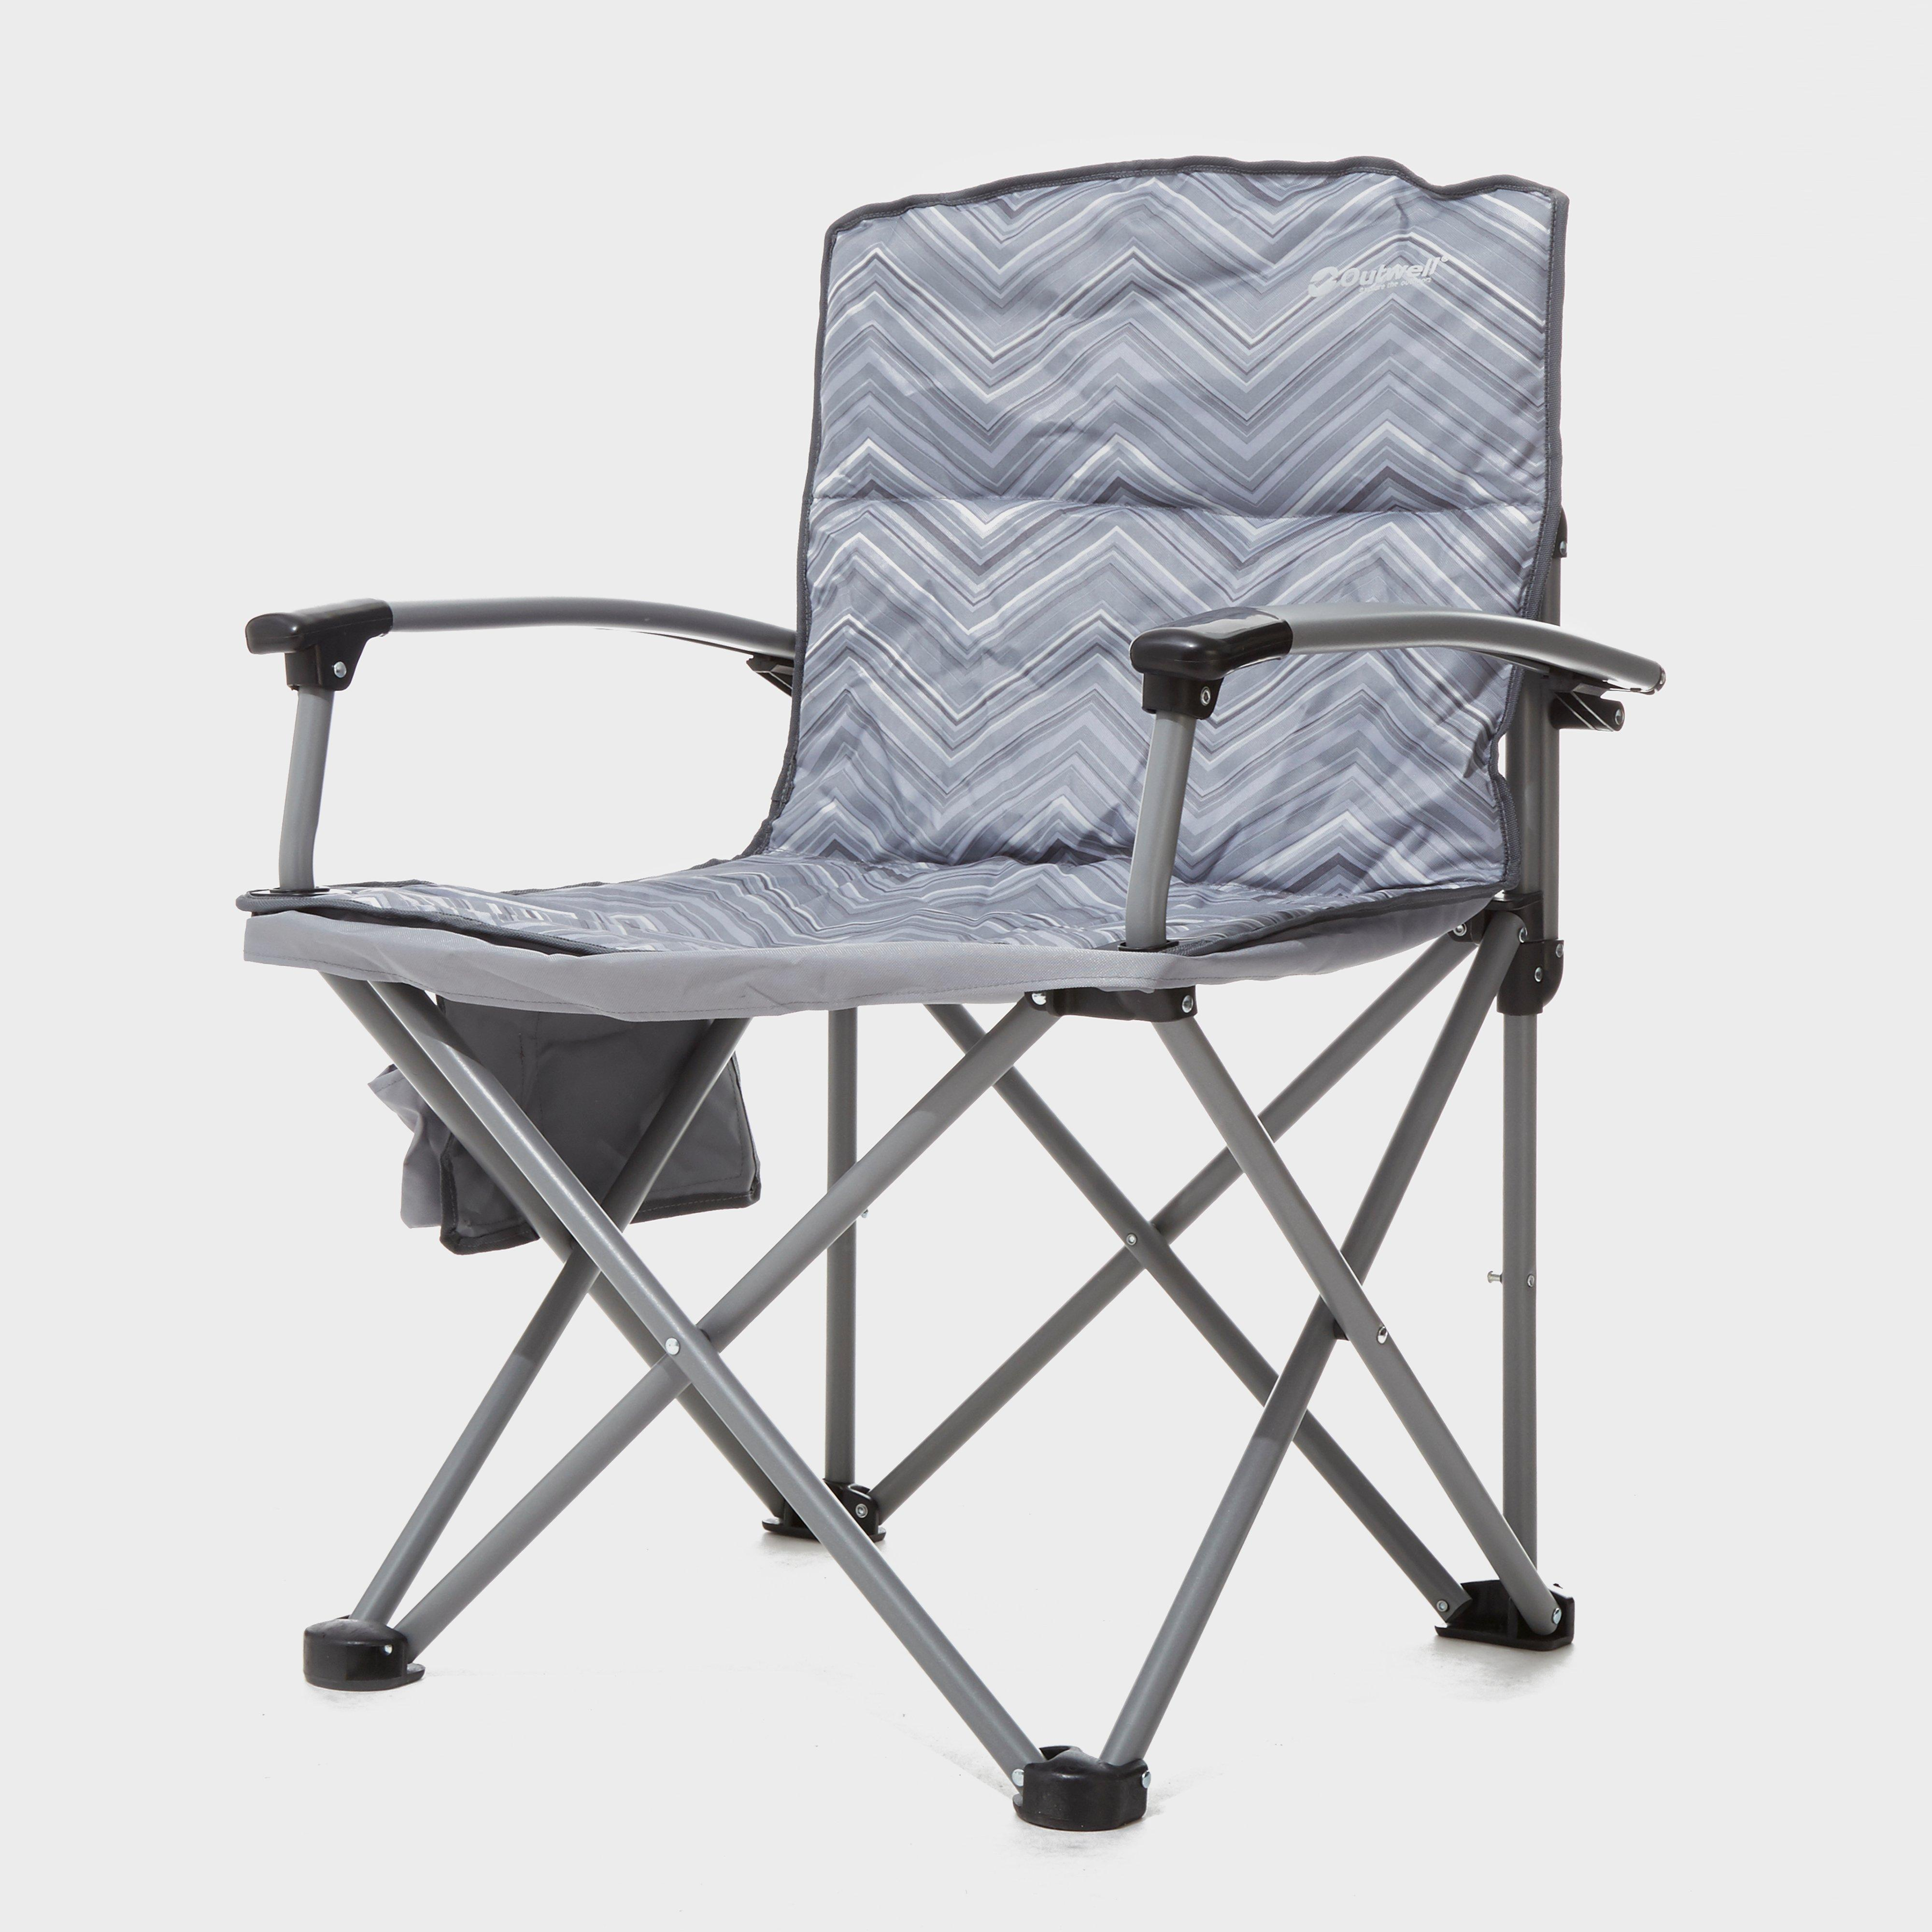 Camping Chairs & Stools Folding Camping Chairs